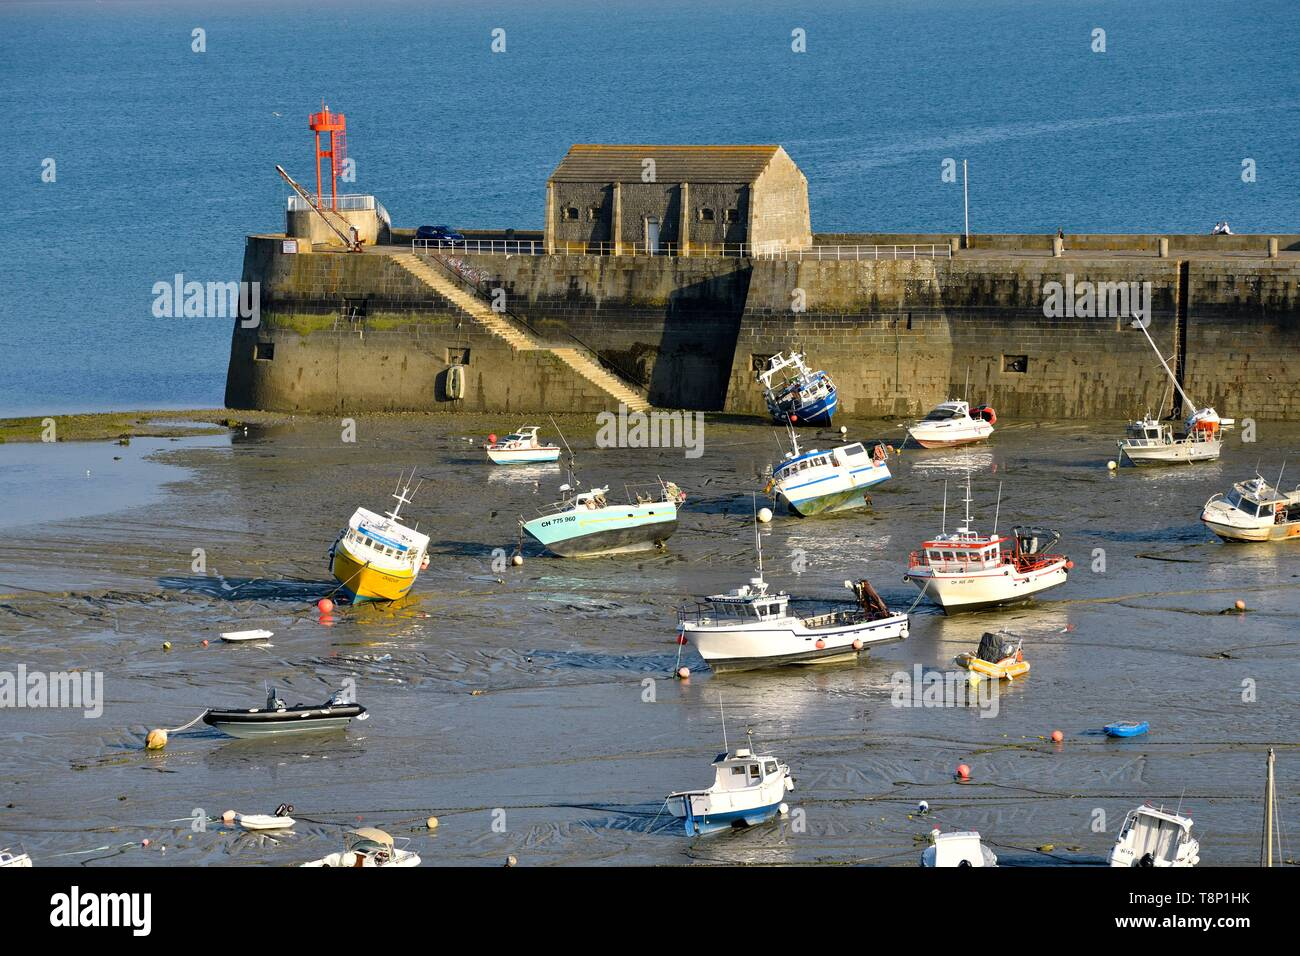 France, Manche, Cotentin, Granville, the Upper Town built on a rocky headland on the far eastern point of the Mont Saint Michel Bay, the port - Stock Image